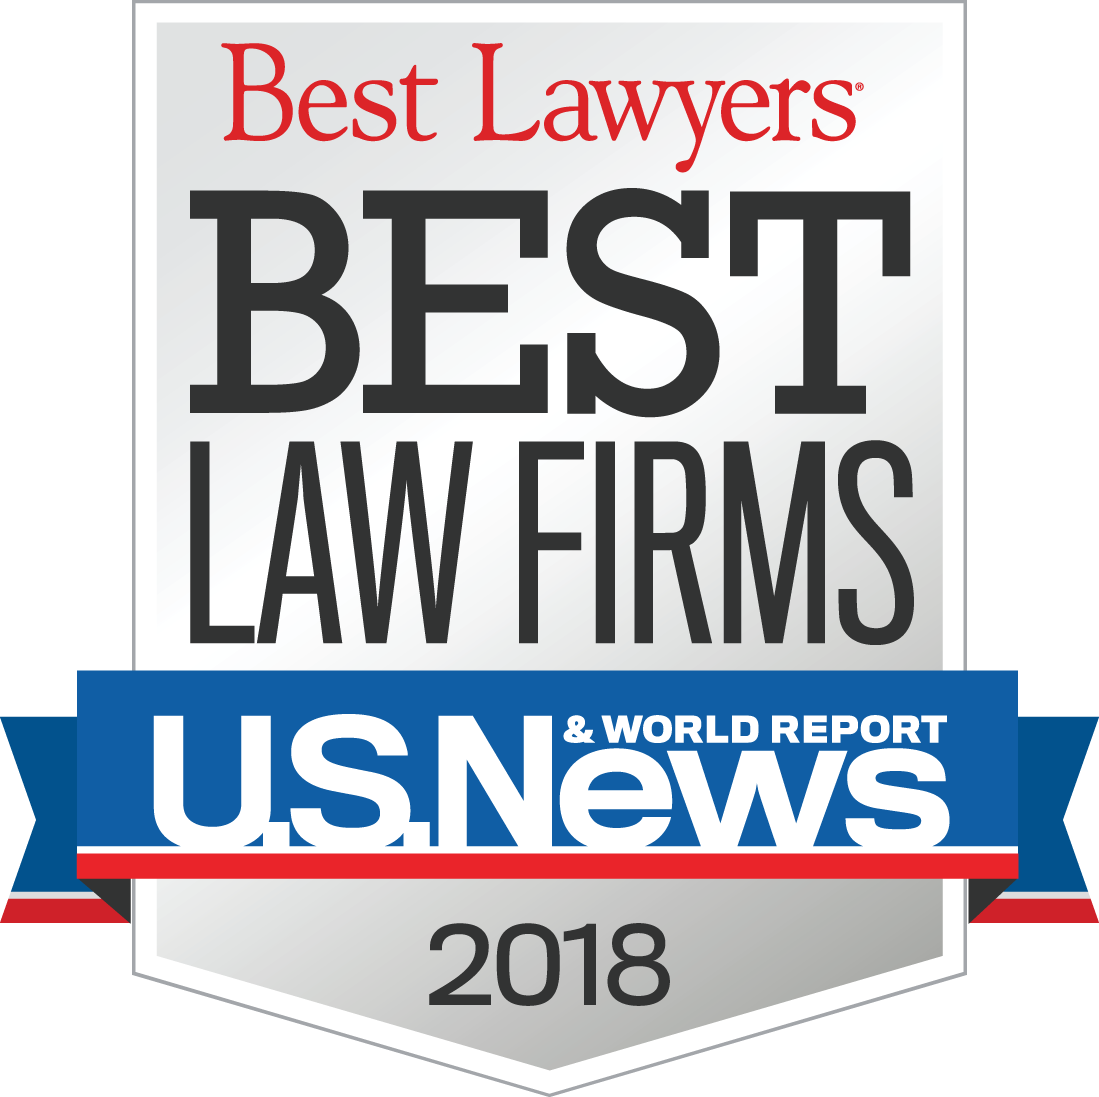 Best Lawyers Best Law Firms US News & World Report 2018 image